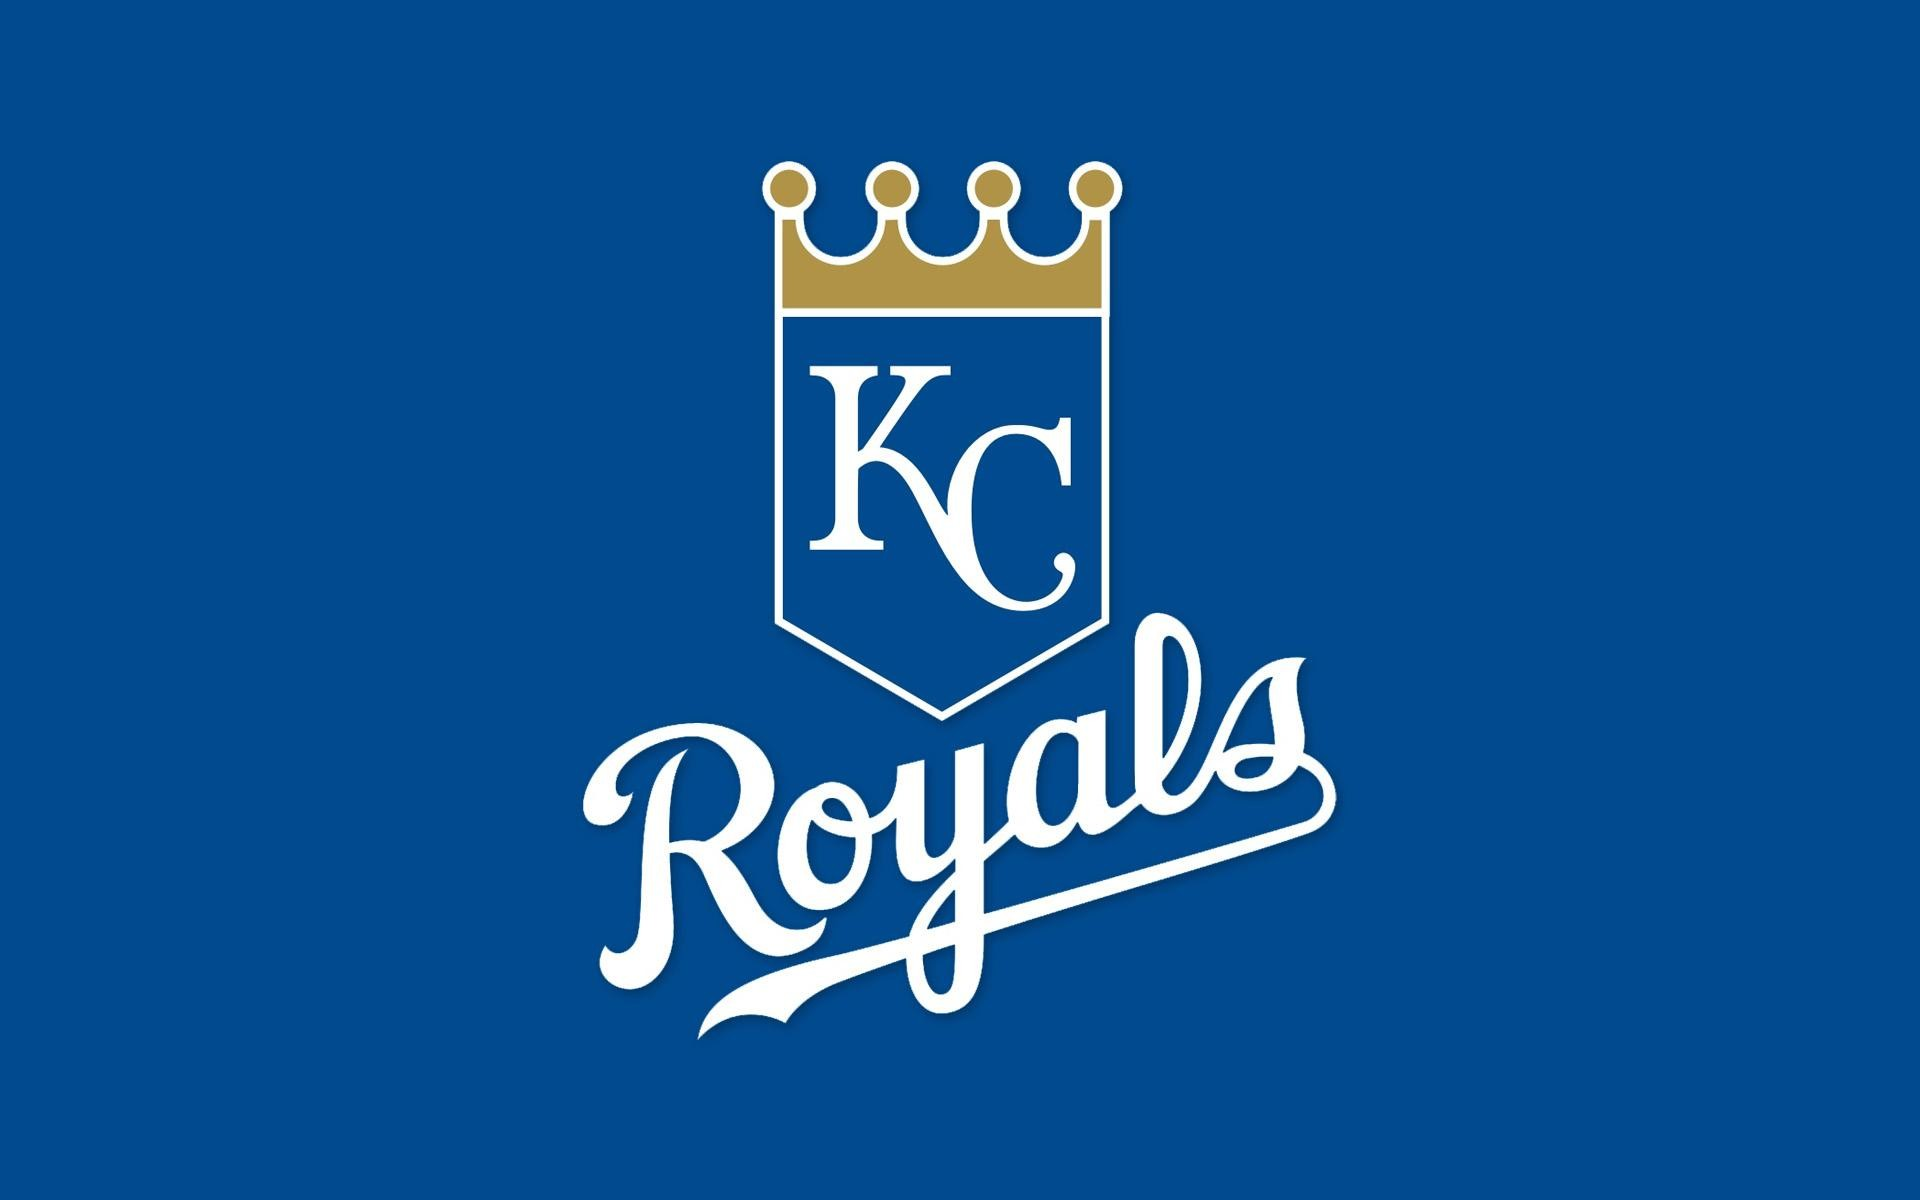 1920x1200 Kansas City Royals Wallpaper